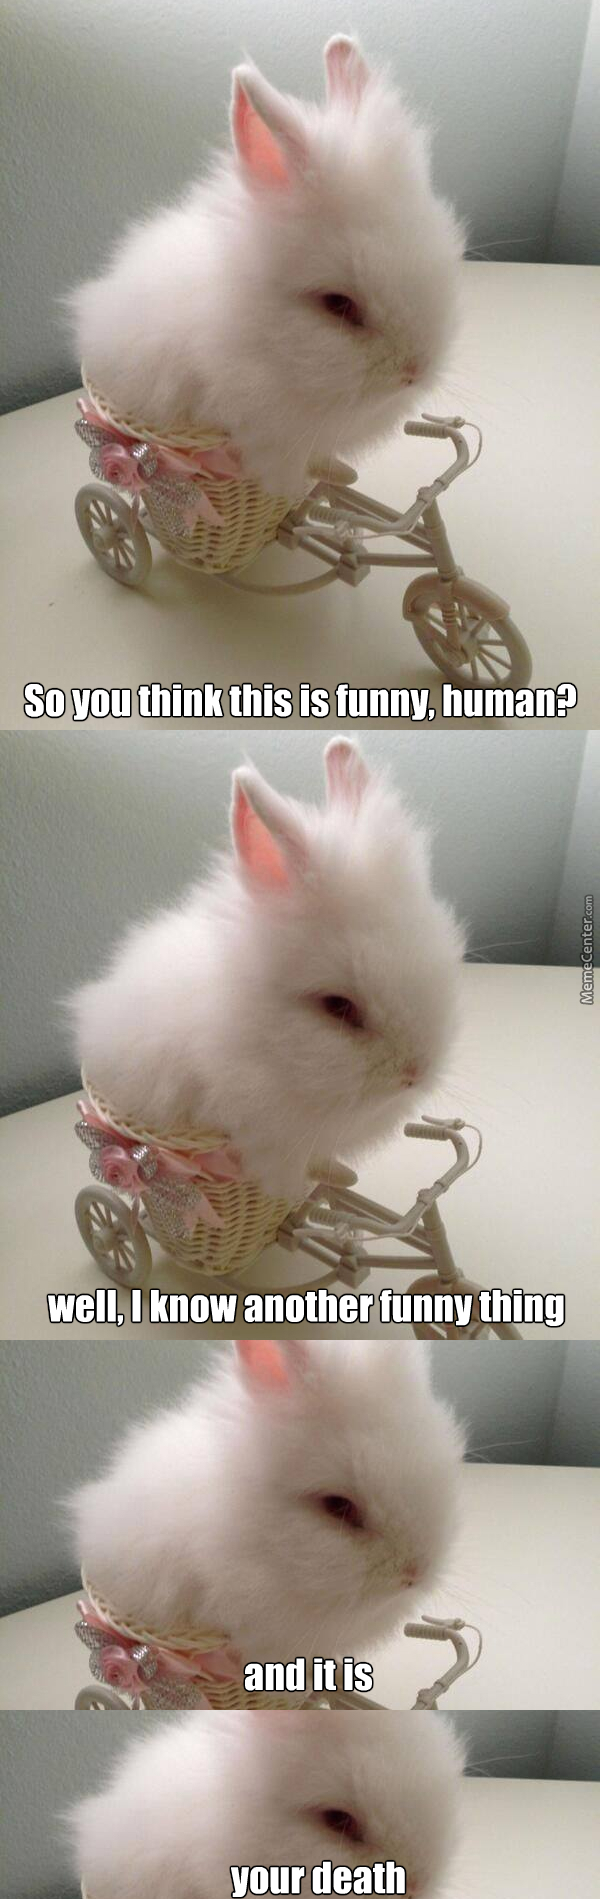 That's The Most Pissed Off Bunny I've Ever Seen